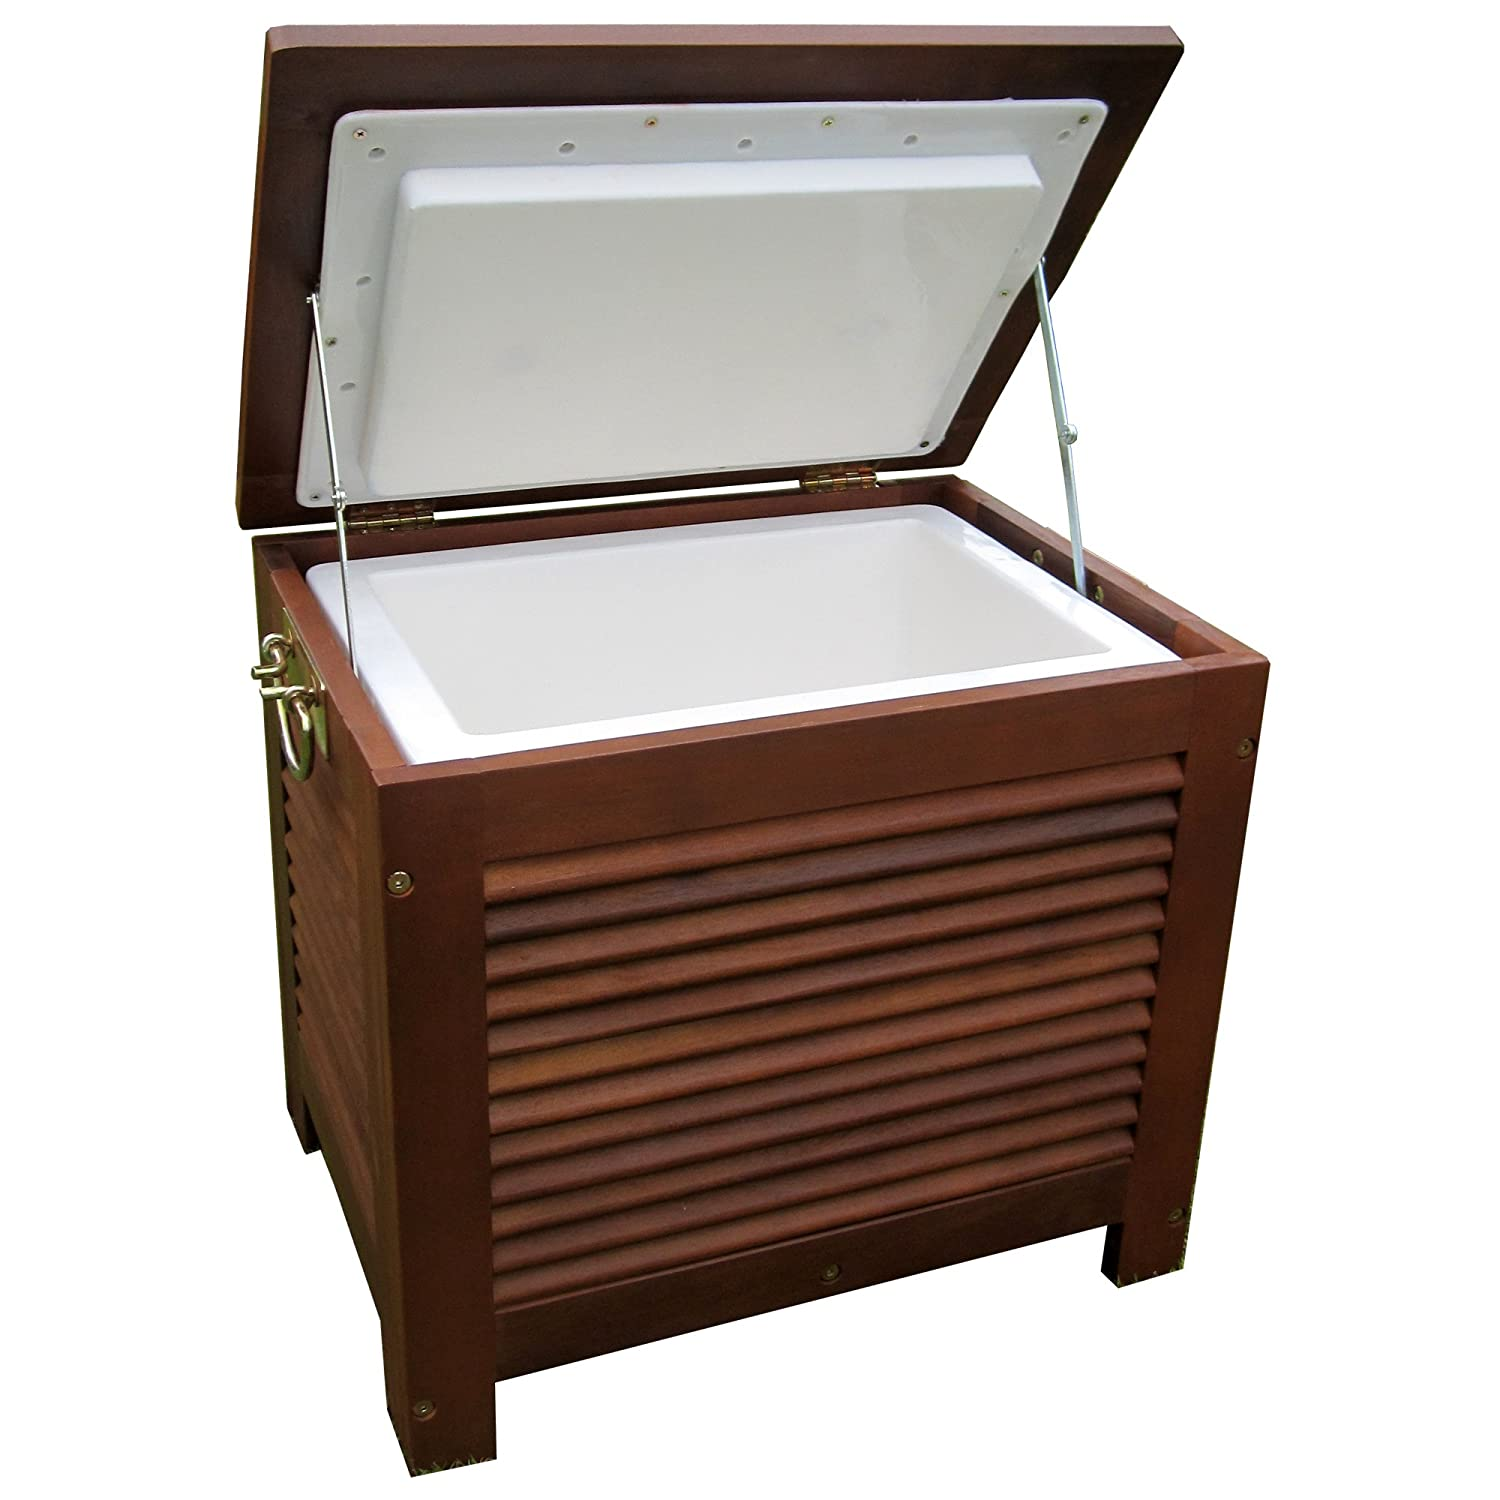 amazoncom merry garden mpg pc01 wooden patio cooler wood ice chest garden outdoor - Patio Coolers